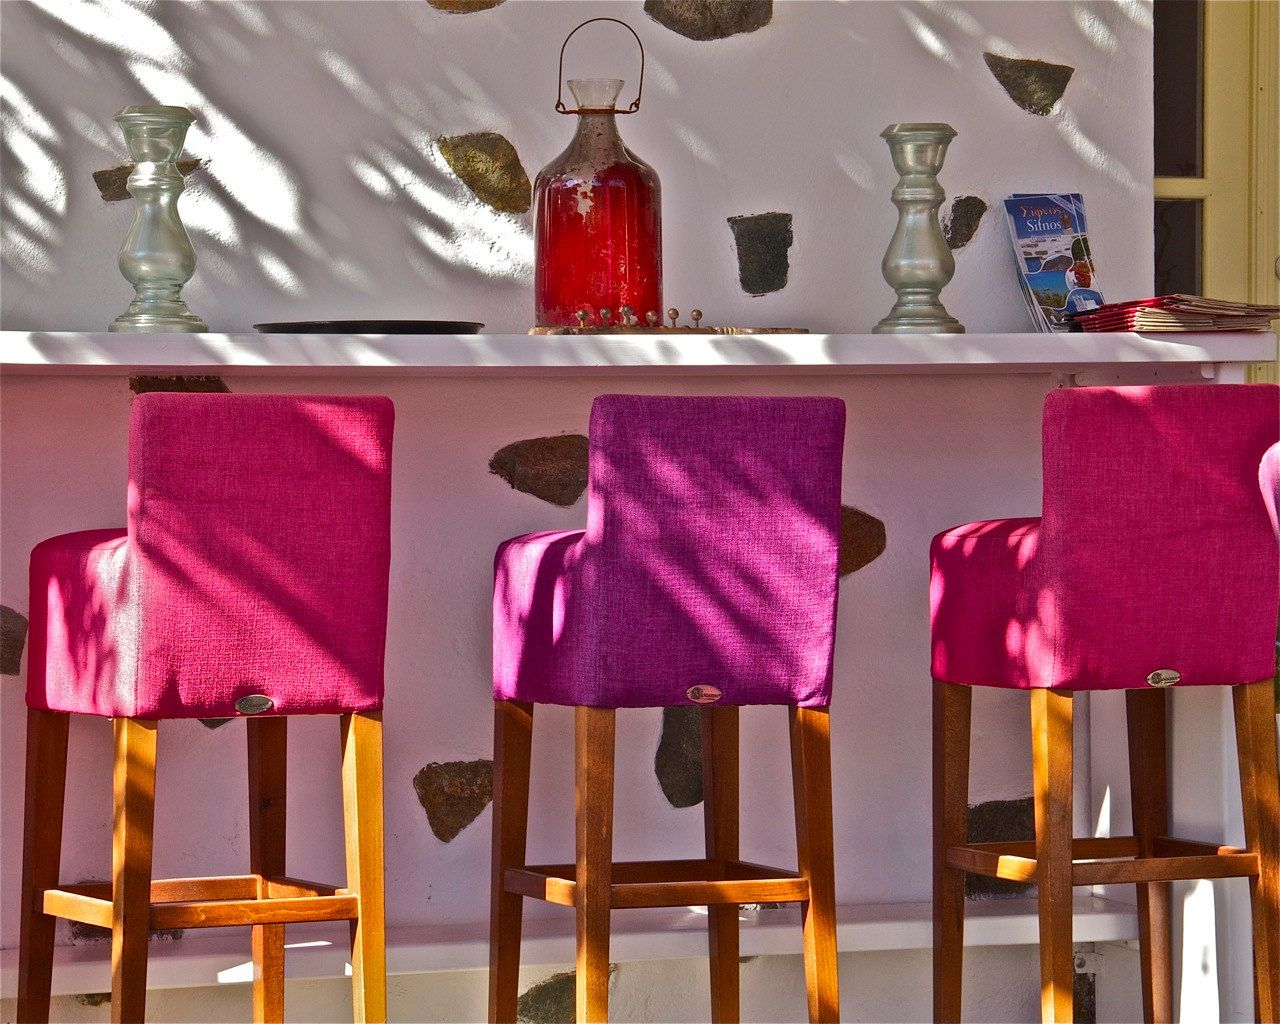 Pink Fuschia Hot White Chairs Photograph Greece Vibrant Shadows Bar Stools 18 00 Via Etsy